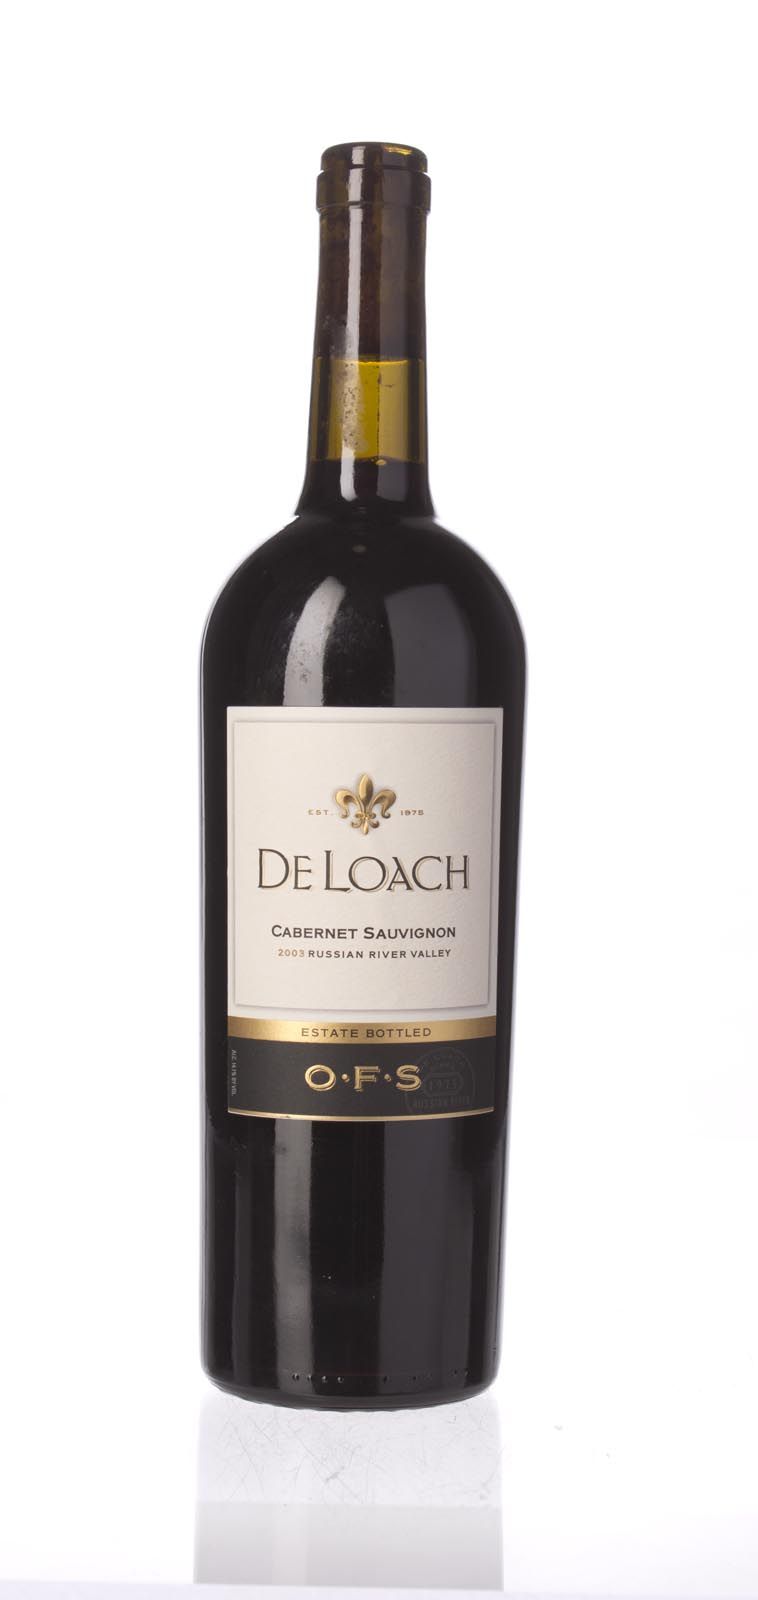 De Loach Cabernet Sauvignon OFS 2003,  () from The BPW - Merchants of rare and fine wines.